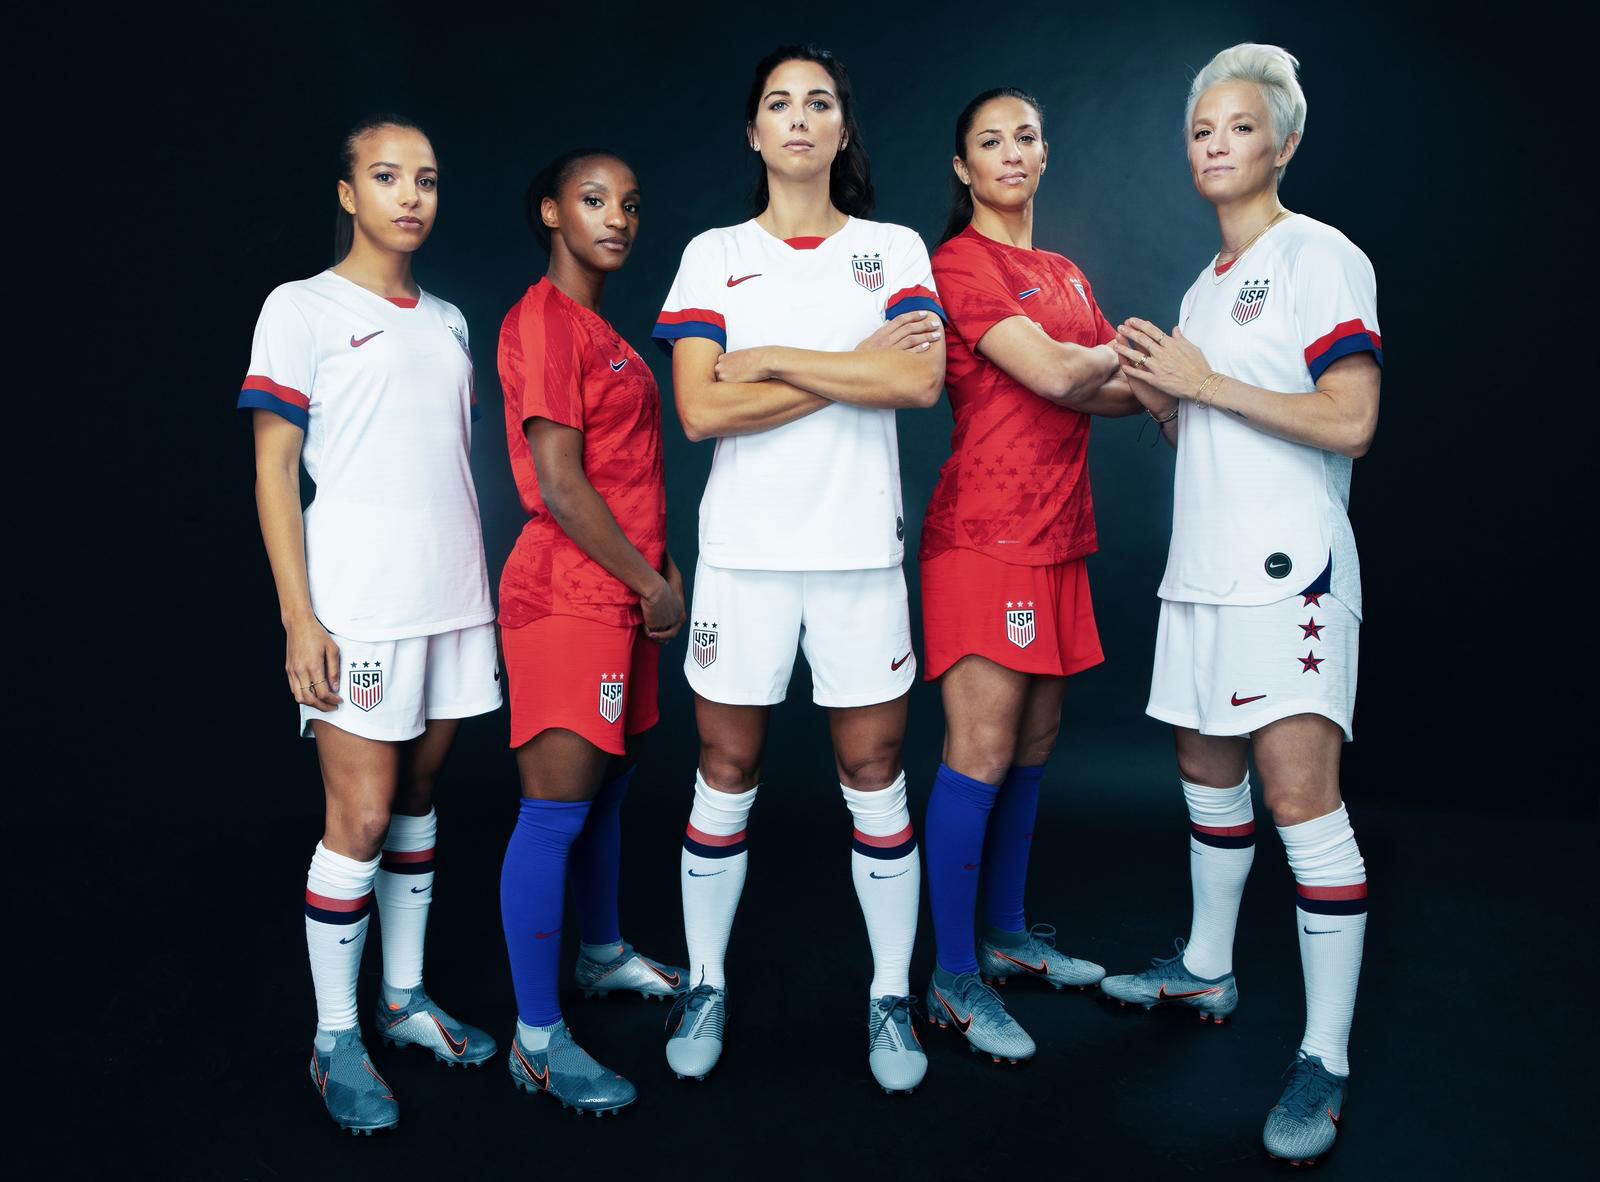 The USWNT reveals its kit for the 2019 Women's World Cup